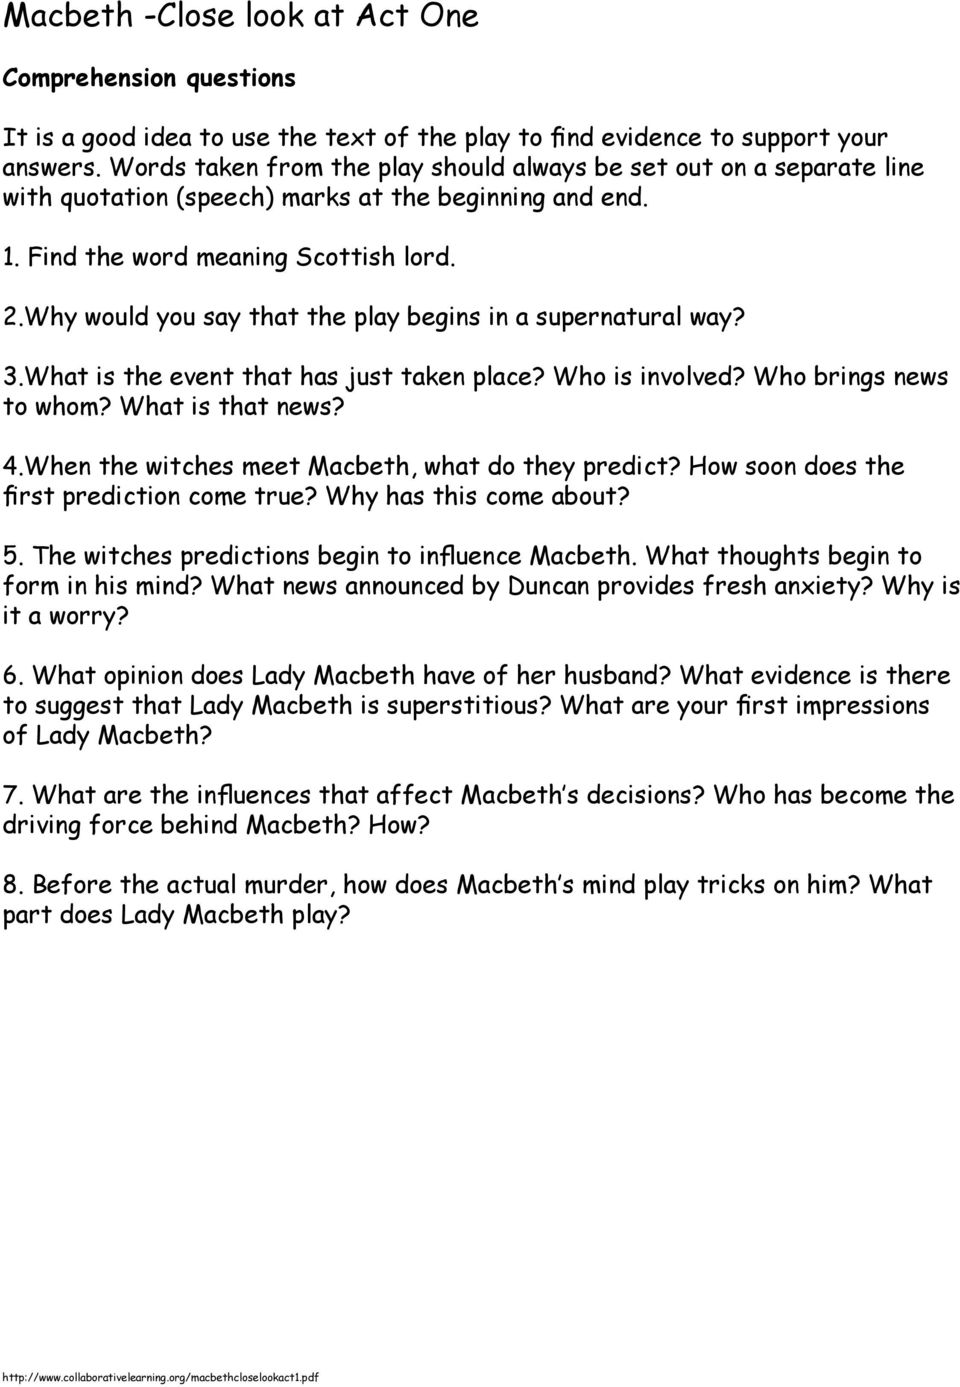 first impressions of lady macbeth Discuss the ways that shakespeare presents female characters in macbeth  explore the varying  section 2: first impressions of lady macbeth - act 1,  scene 5.